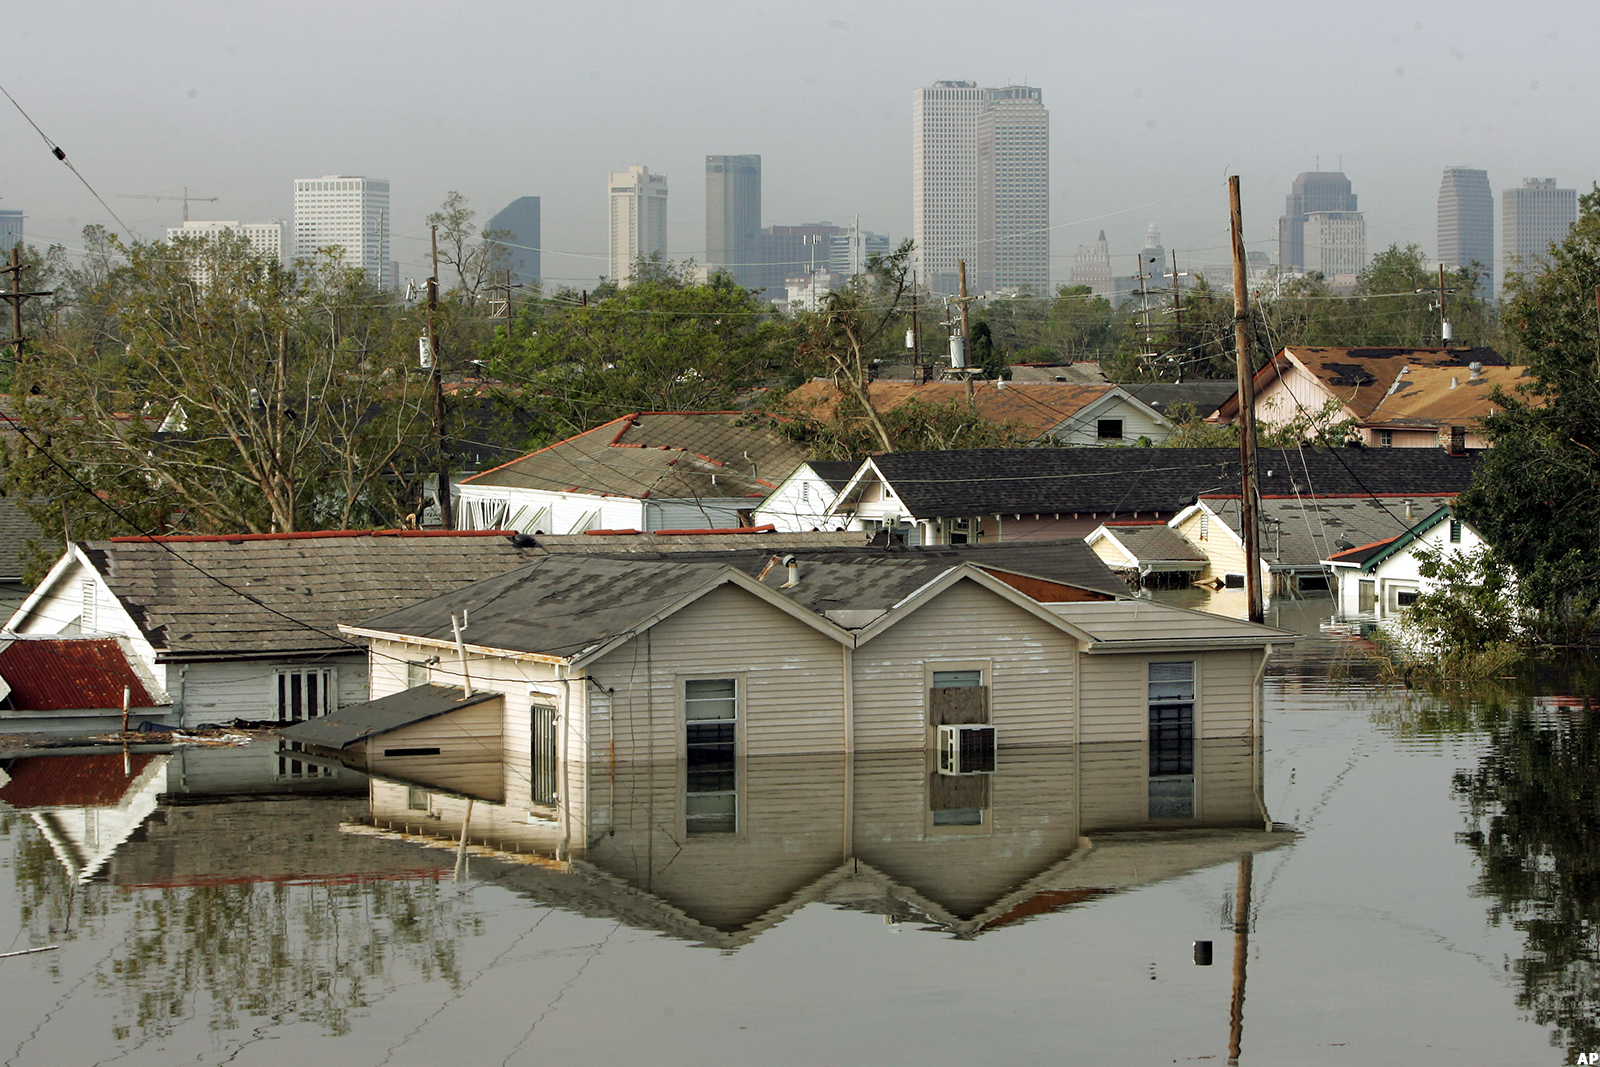 The Fed raised interest rates 25 basis points less than a month after Katrina struck New Orleans in 2005.